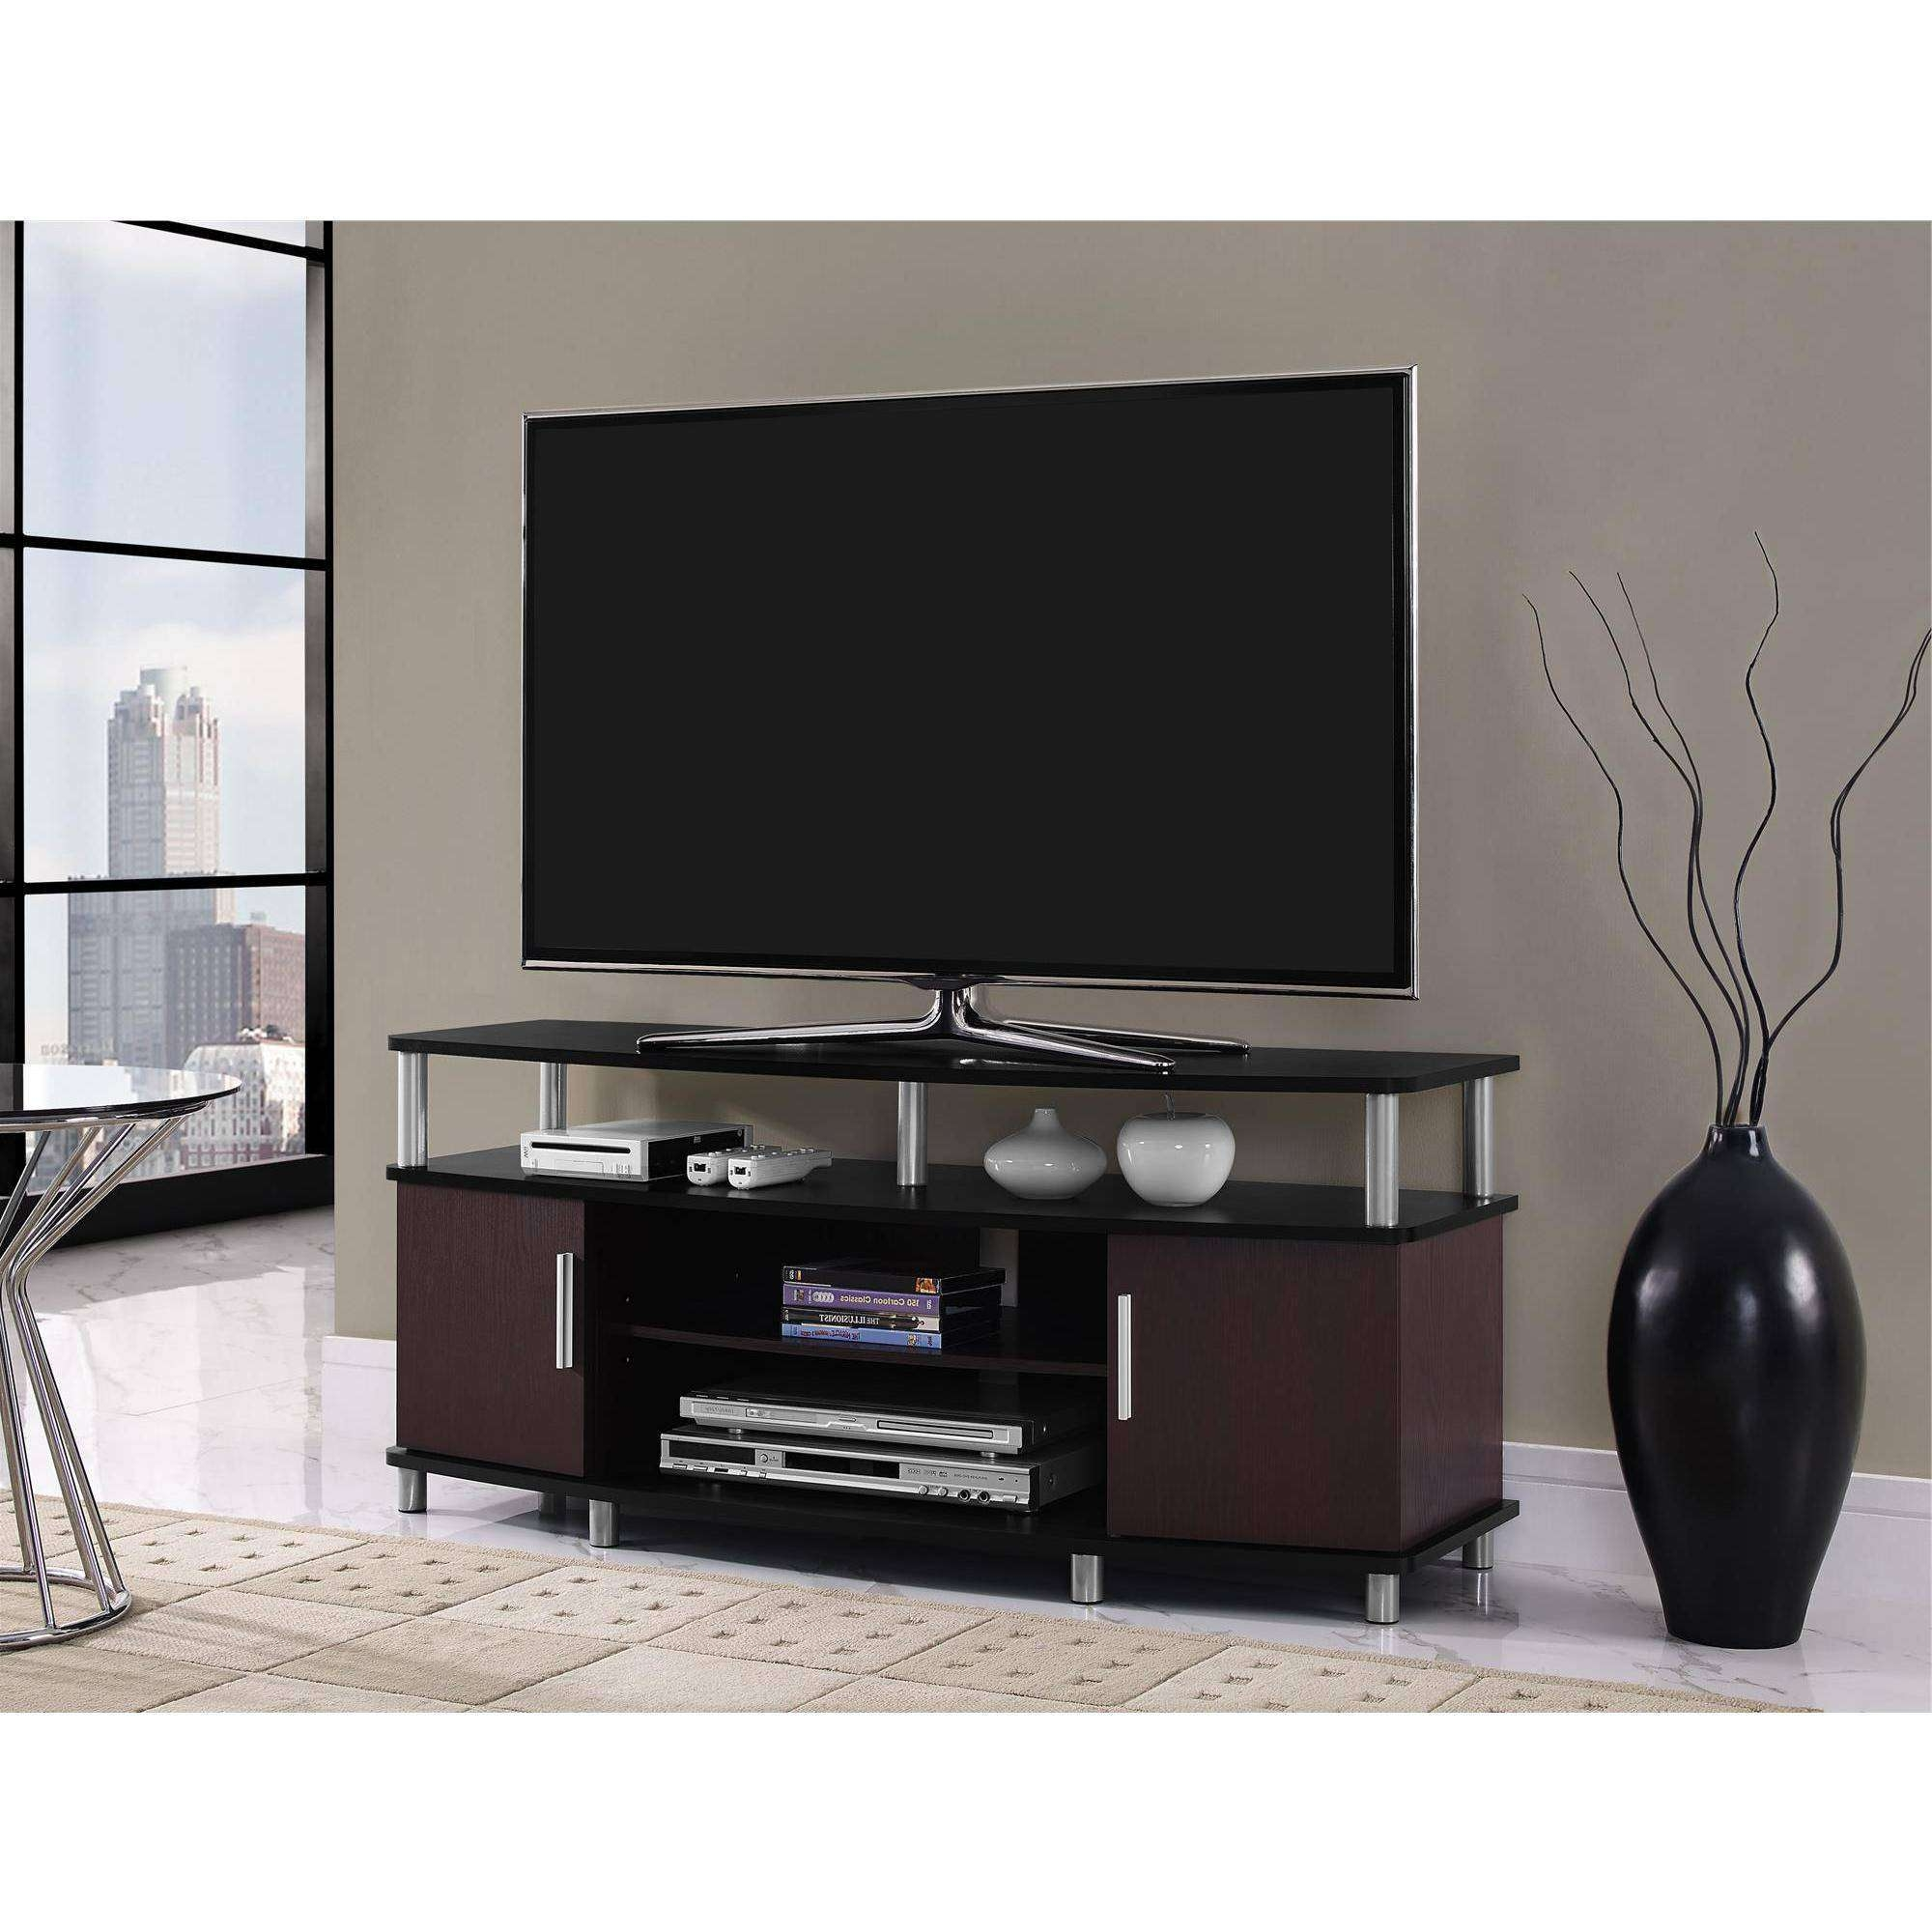 Amazing Corner Tv Stands For 50 Inch Tv 15 For Your Home With Corner Tv Stands For 50 Inch Tv (View 17 of 20)